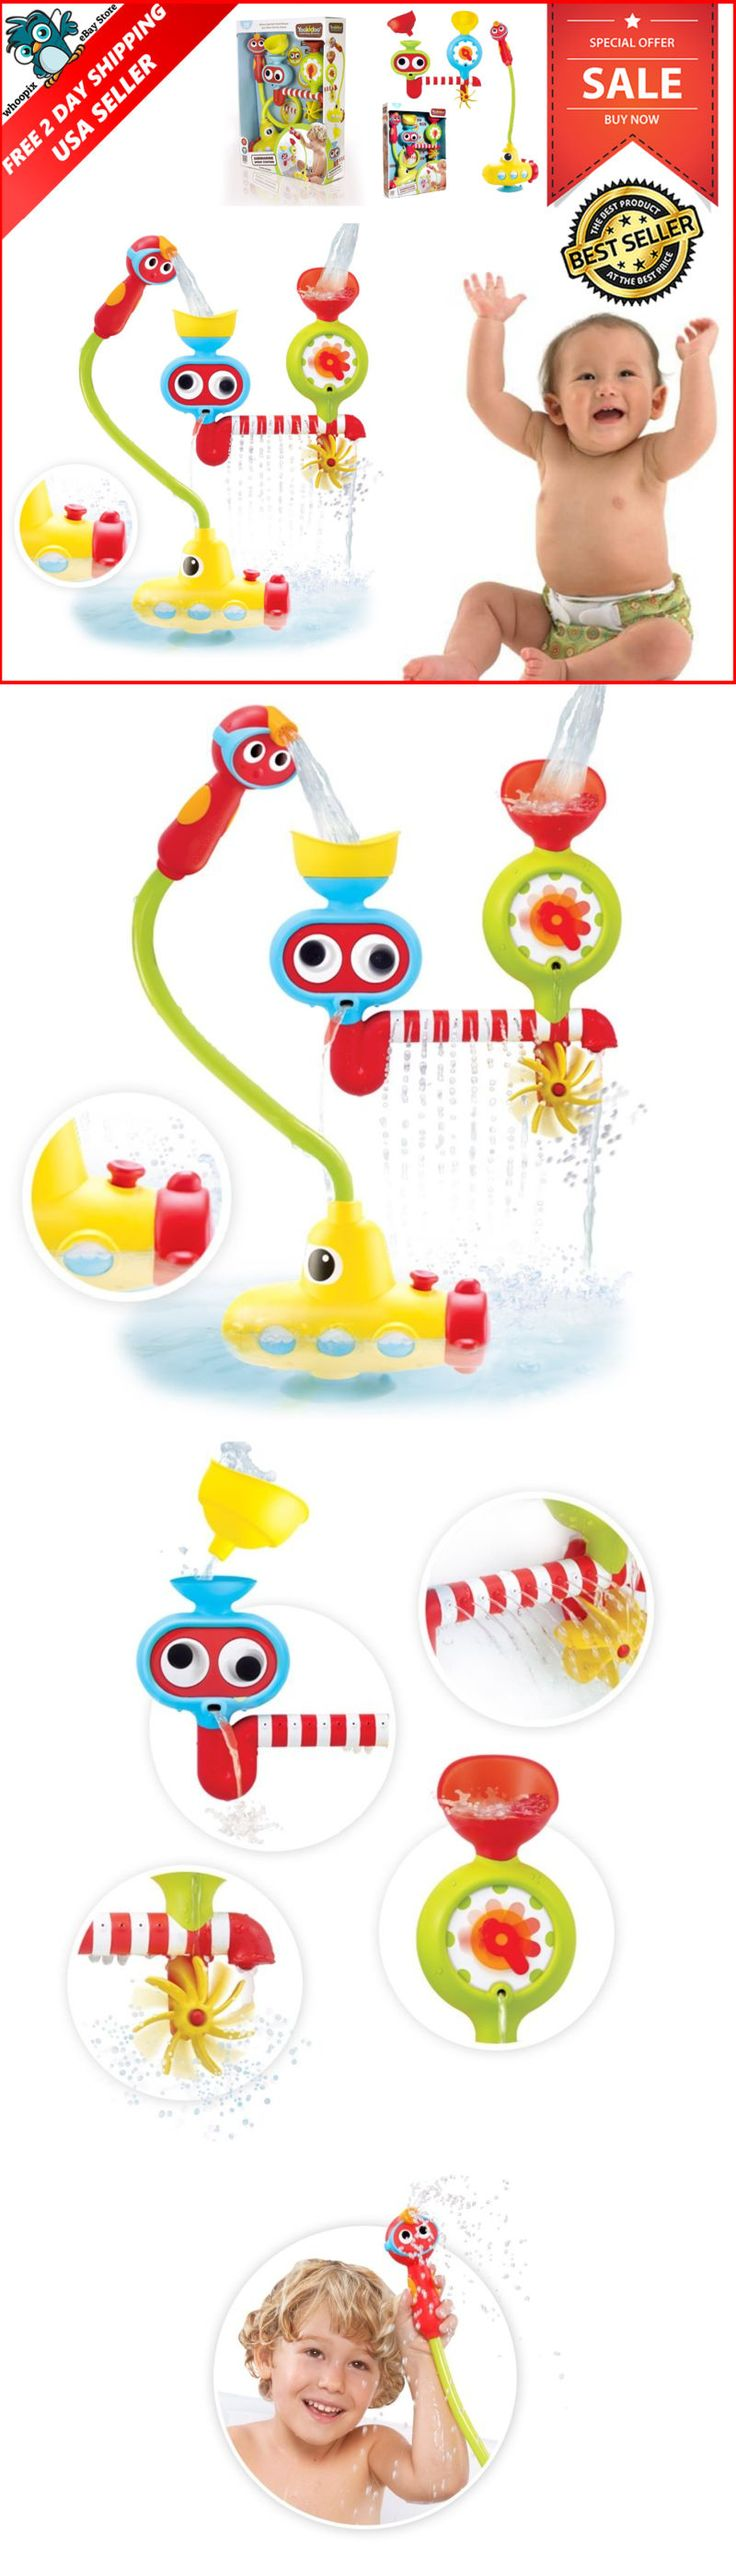 best 25 toddler bath toys ideas only on pinterest bath toys for toy vehicles 145946 kids bath toy play shower hose tub water spray baby girls boys